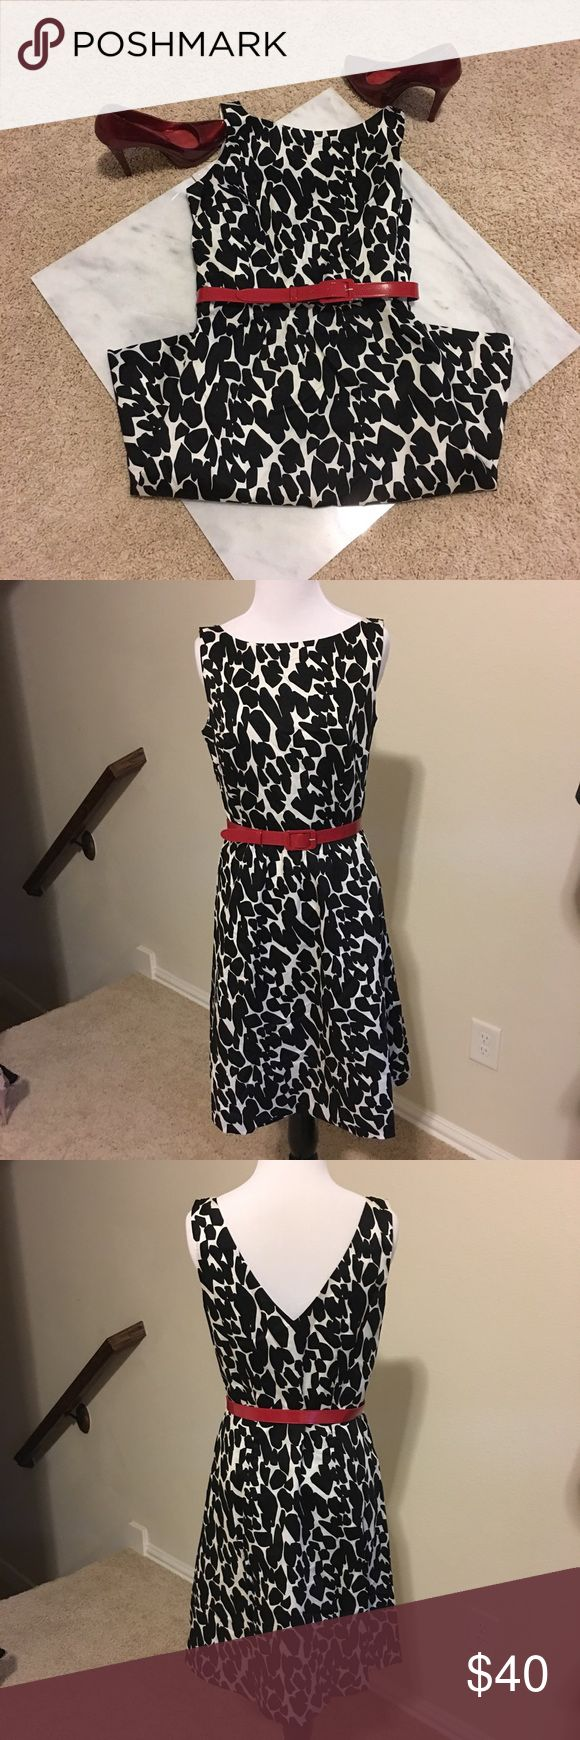 EUC Ann Taylor black & cream dress with red belt EUC Ann Taylor sleeveless dress. A beautiful black and cream dress with a sheen to it. Comes with the red belt. Pair with red shoes for a stunning look. Size 4. High neck with v neck in the back. Double lined and machine washable. A lovely dress for so many occasions! Comes from a smoke free home. Ann Taylor Dresses Midi